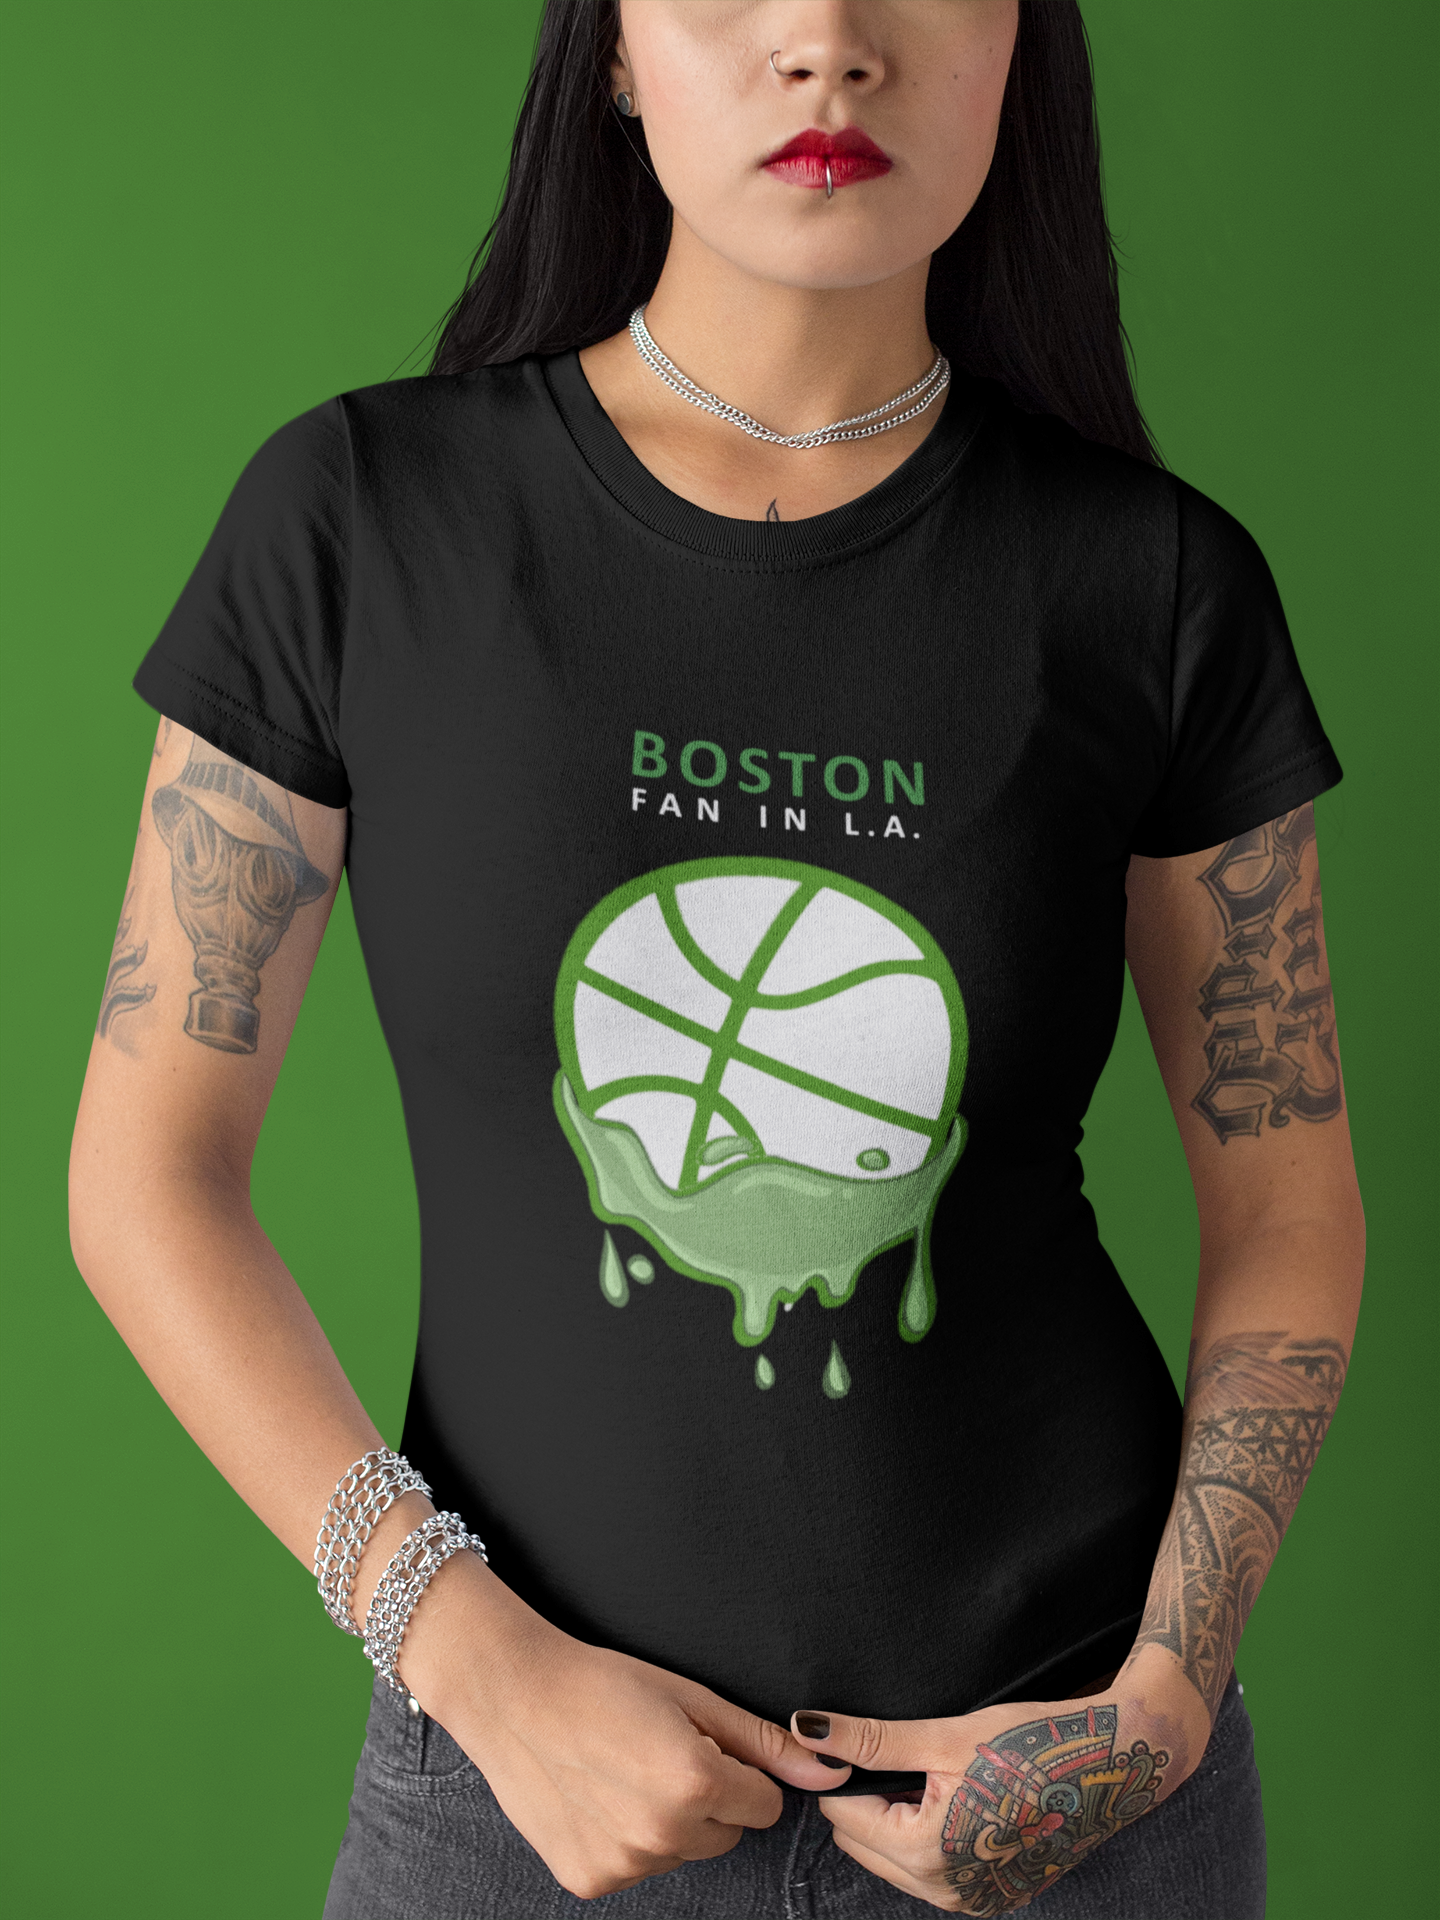 Boston Fan in LA Black